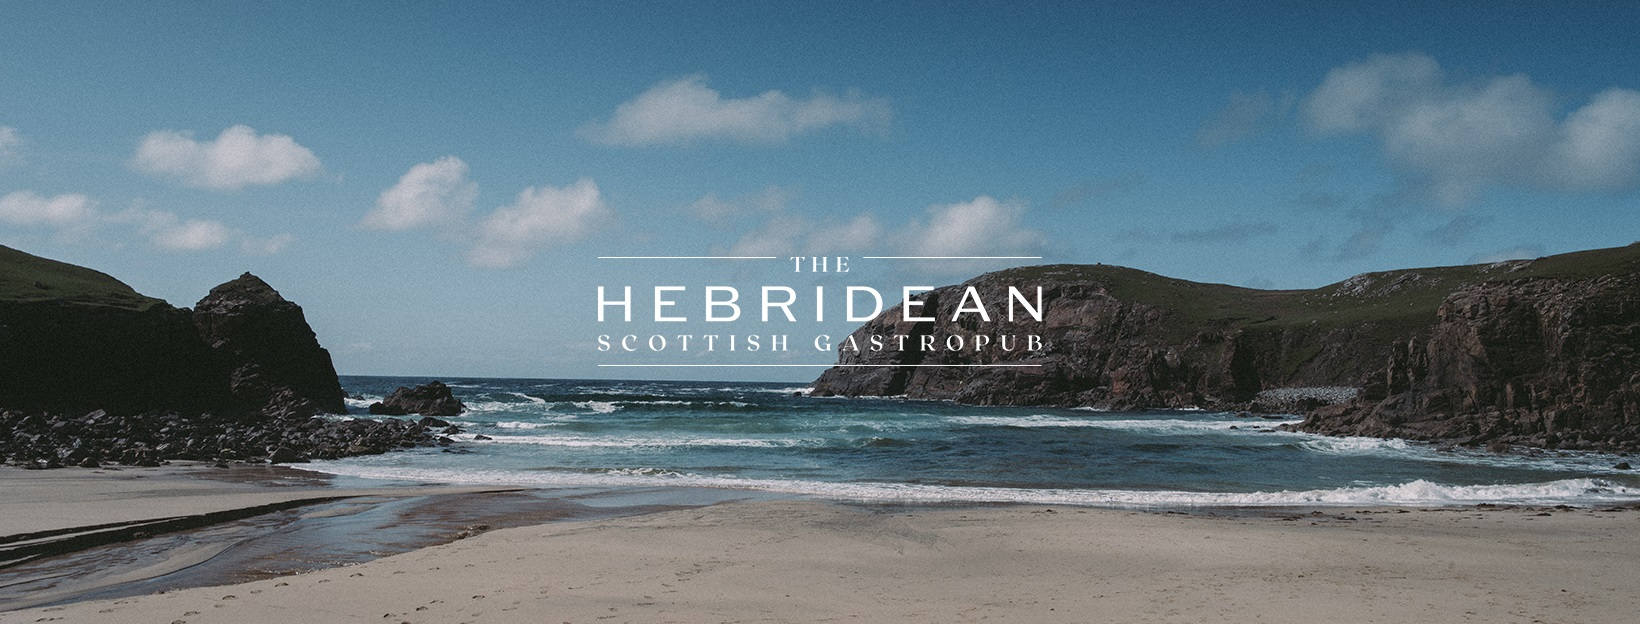 A culinary celebration of The Hebrides set to open this Summer by Chef Nico Simeone - Read full article here